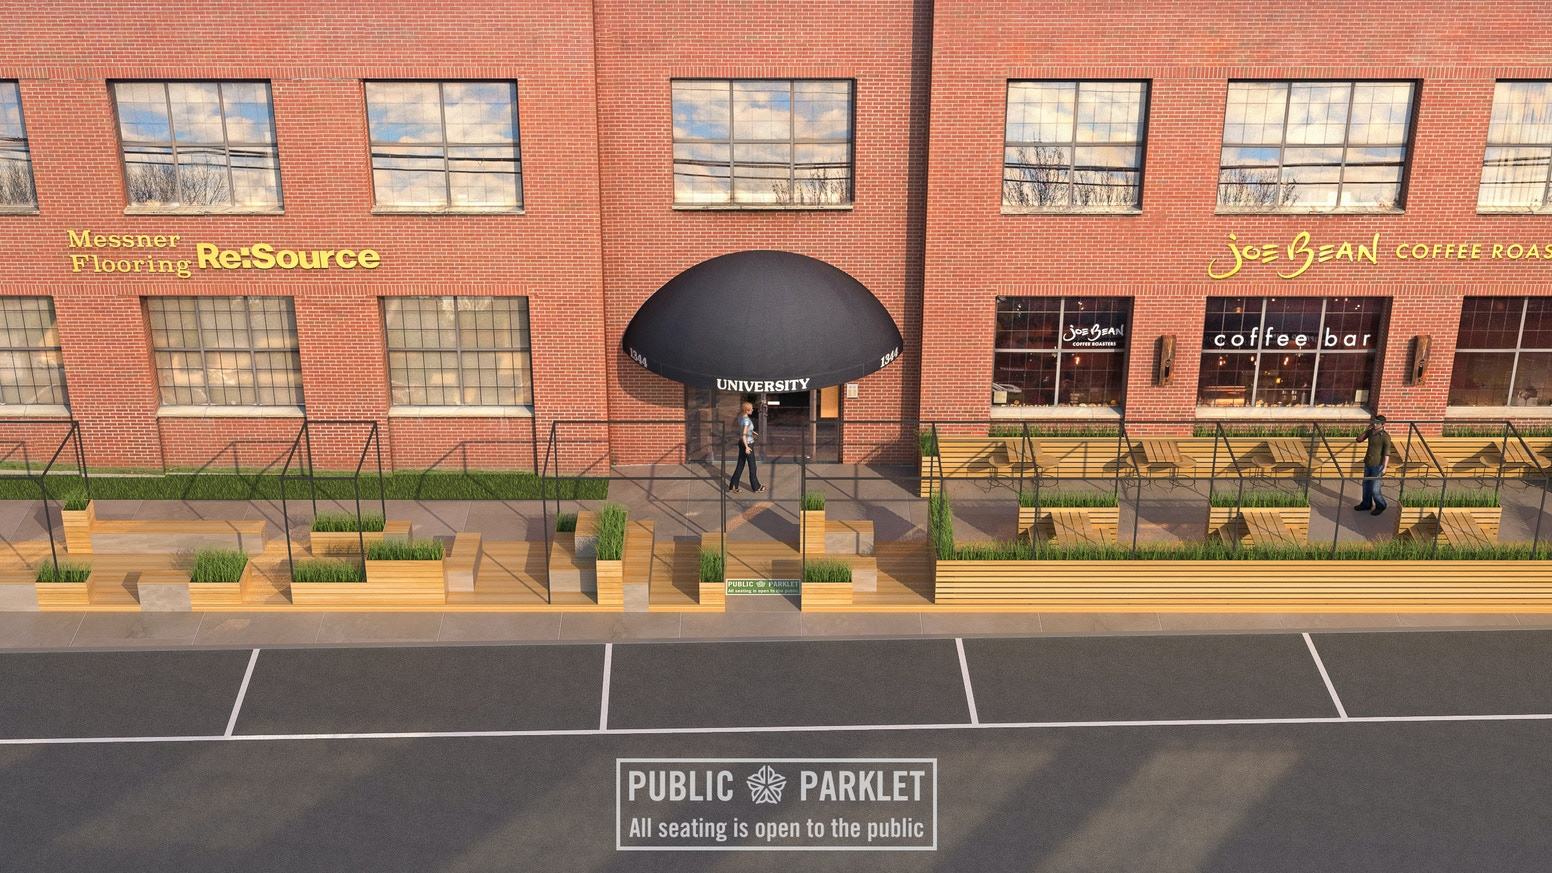 The first ever parklet to be built in Rochester, NY, the beginning of parklets across our city!